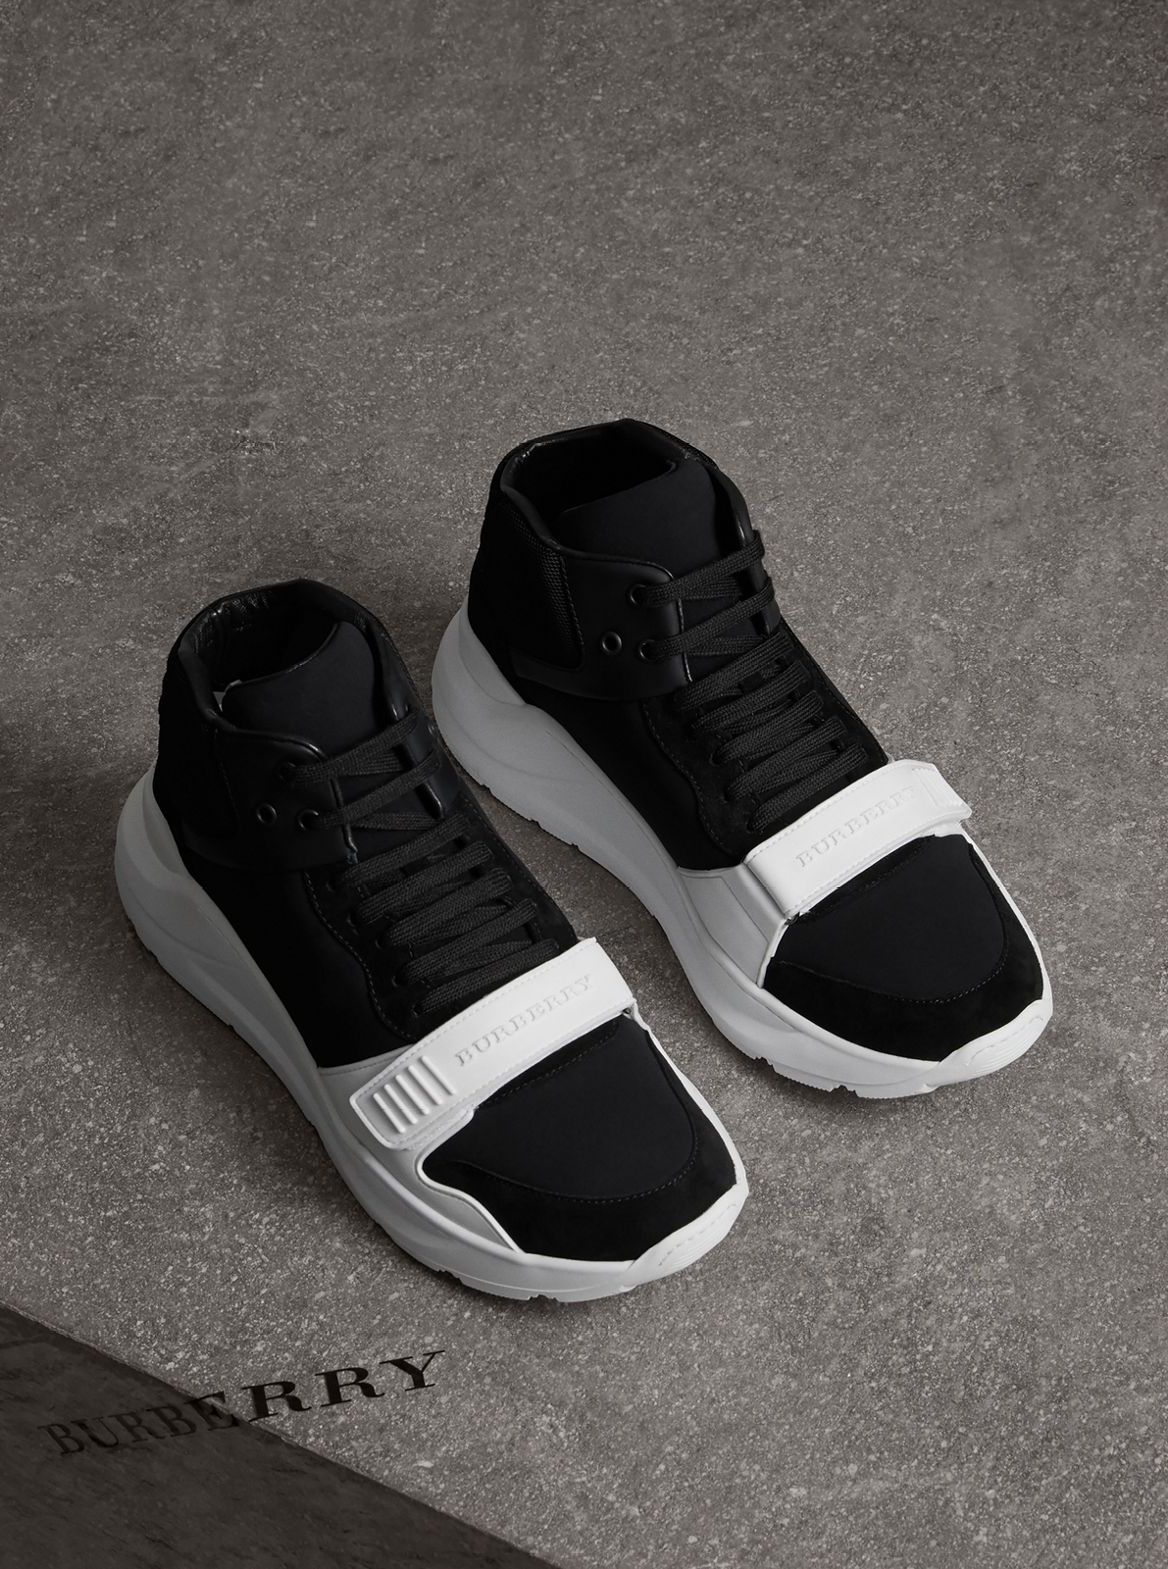 643feaa7e72  Burberry runway sneaker in a clash of textures – suede